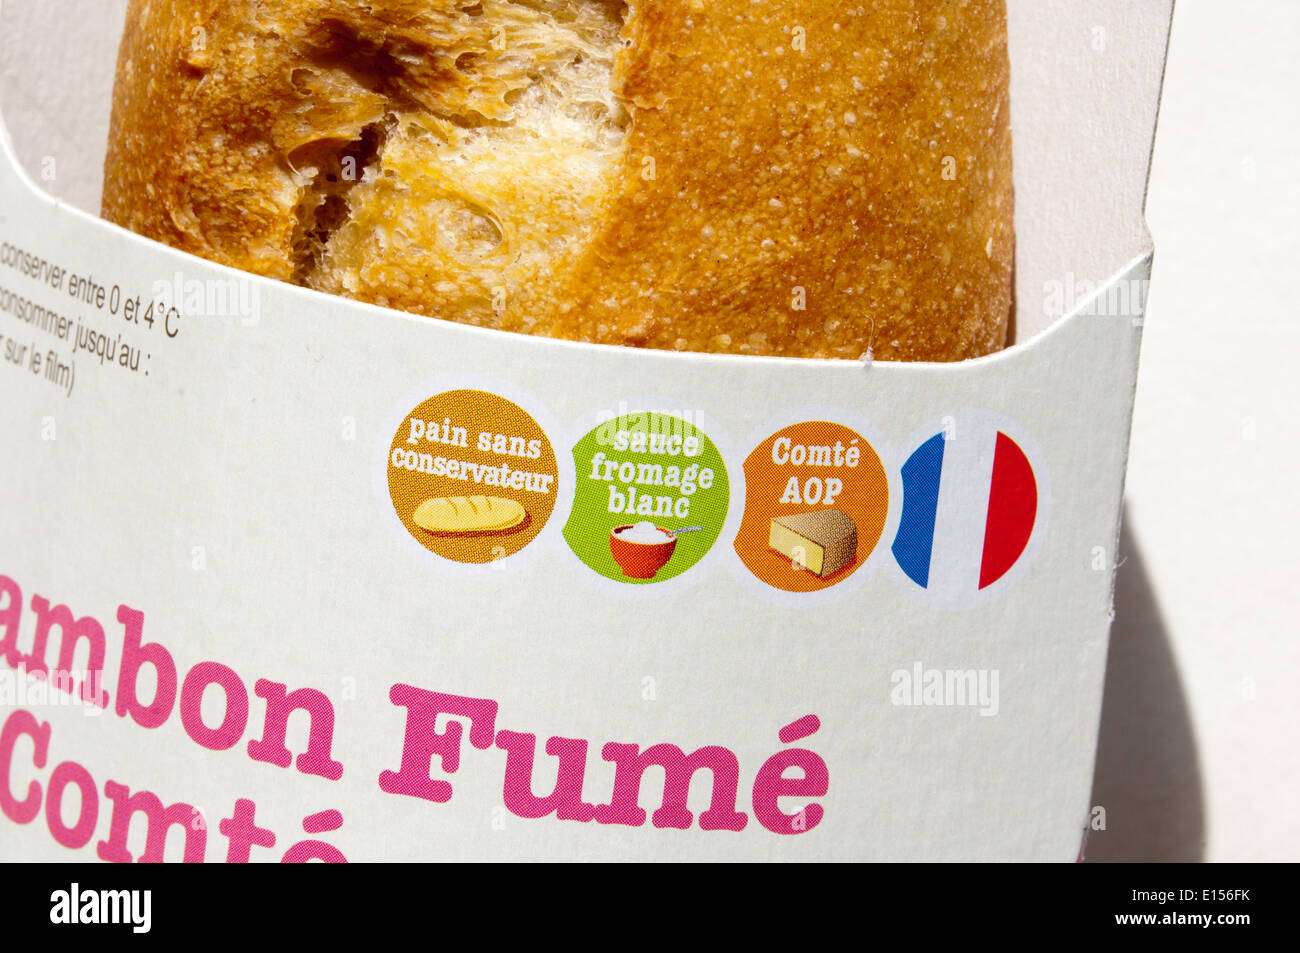 Symbols on packaging of a French sandwich. - Stock Image